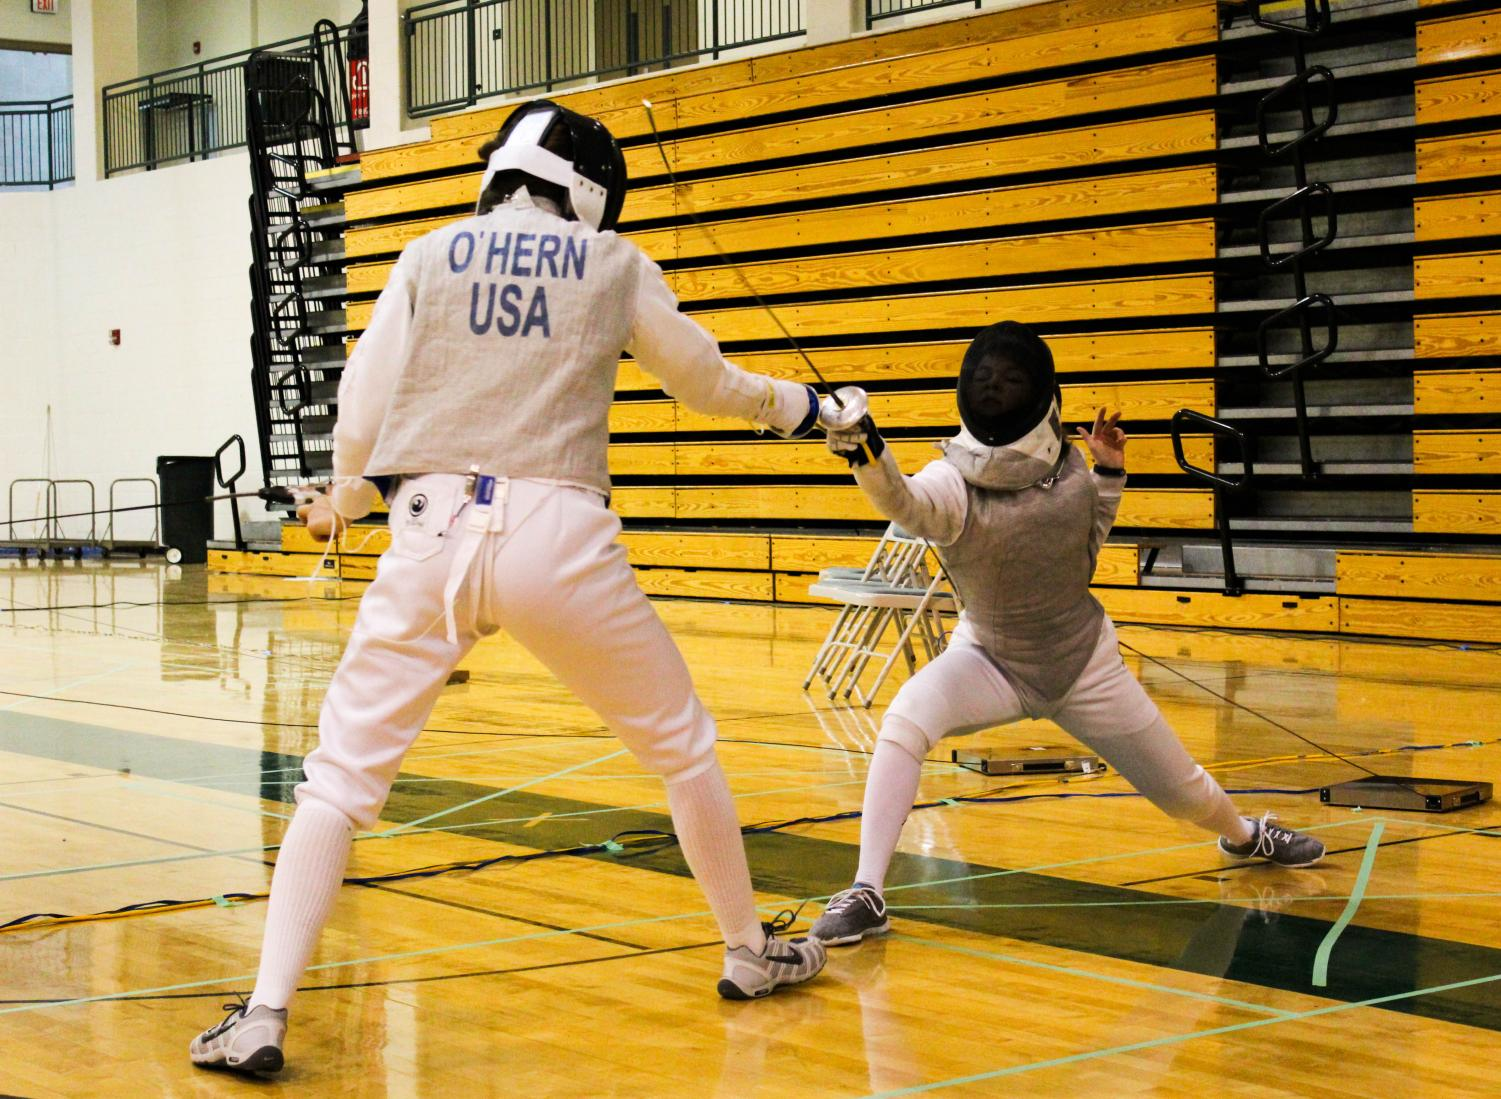 Fencing is a sport that requires lots of equipment, making it expensive.